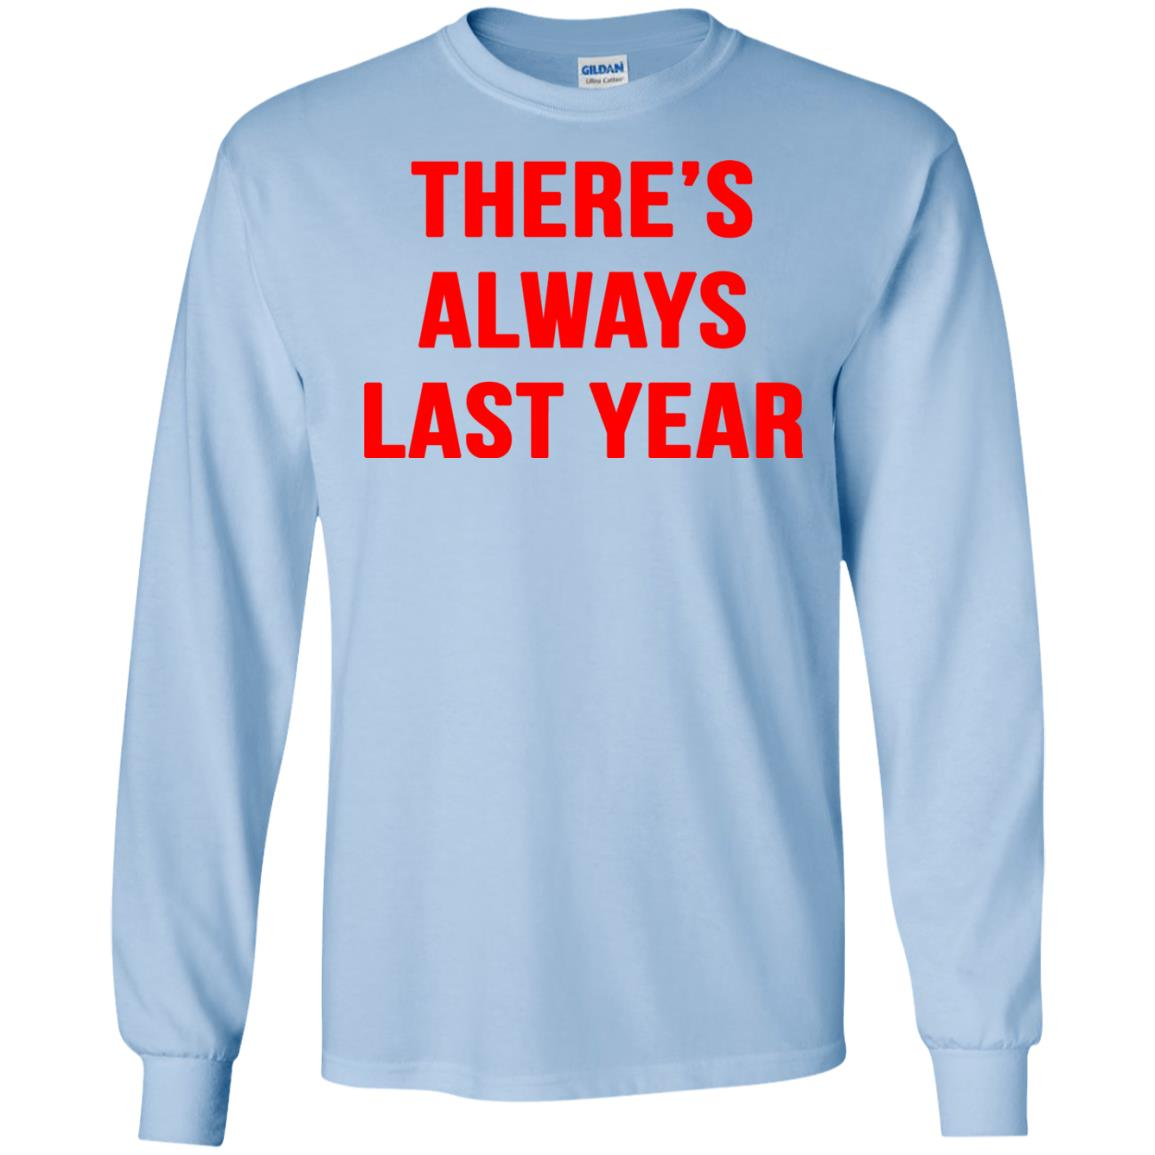 image 1919 - There's always last year t-shirt, long sleeve